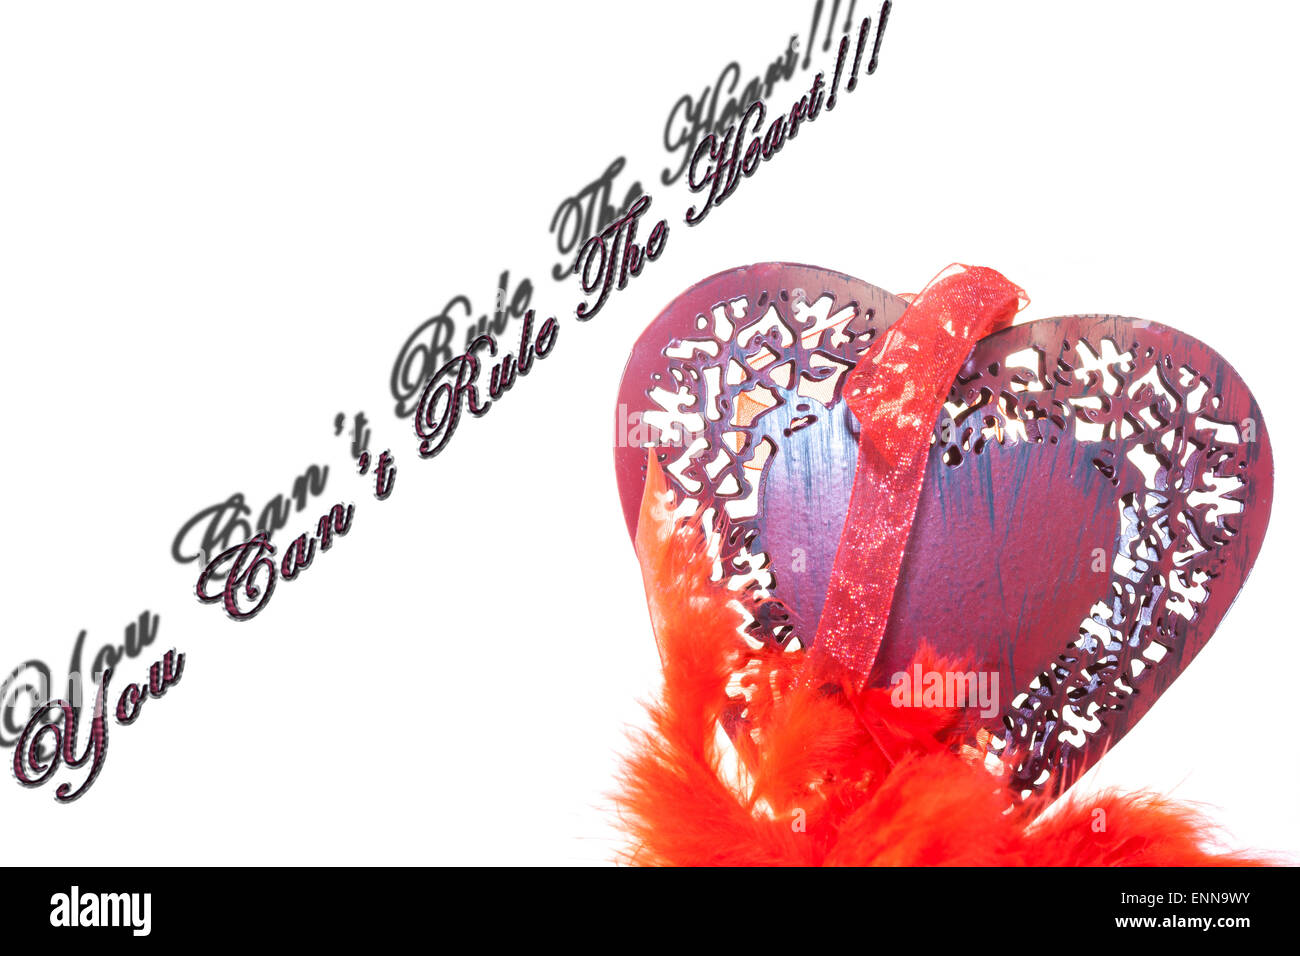 Wooden red hearth. You Can't Rule The heart!!! - Stock Image